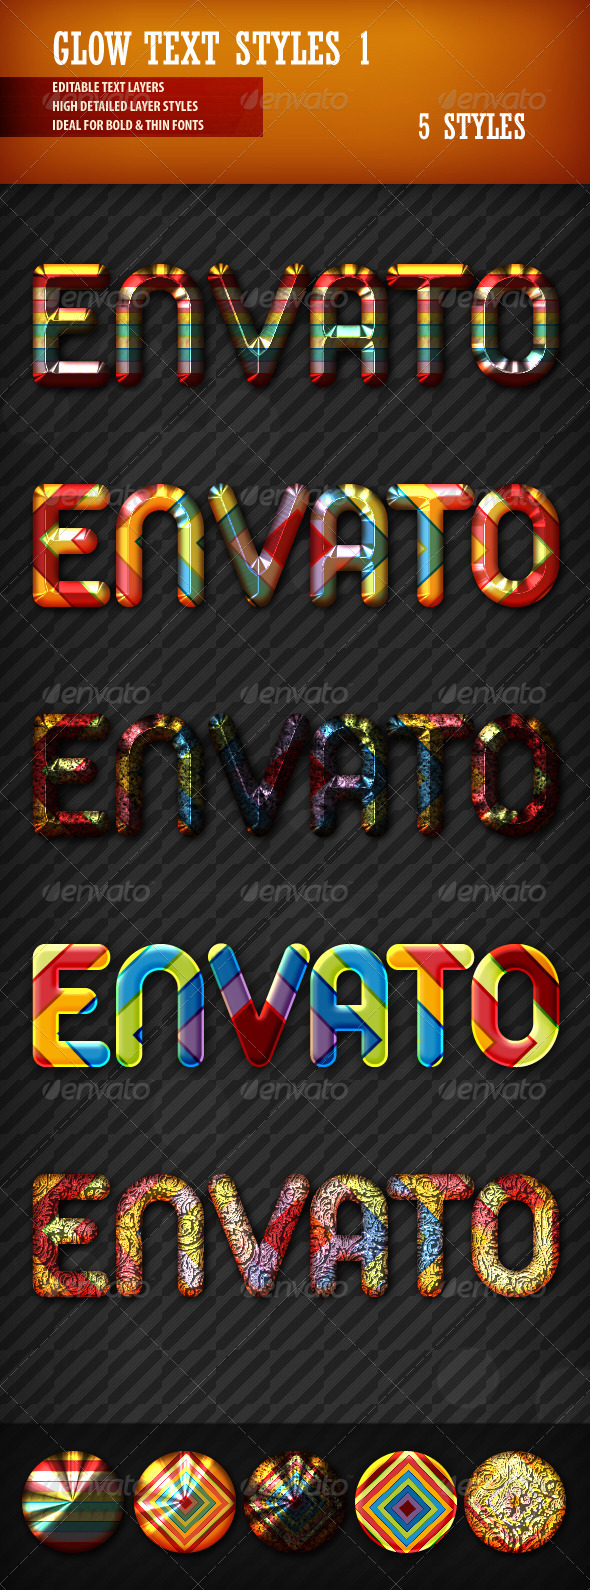 Glow Text Styles 1 - Text Effects Styles